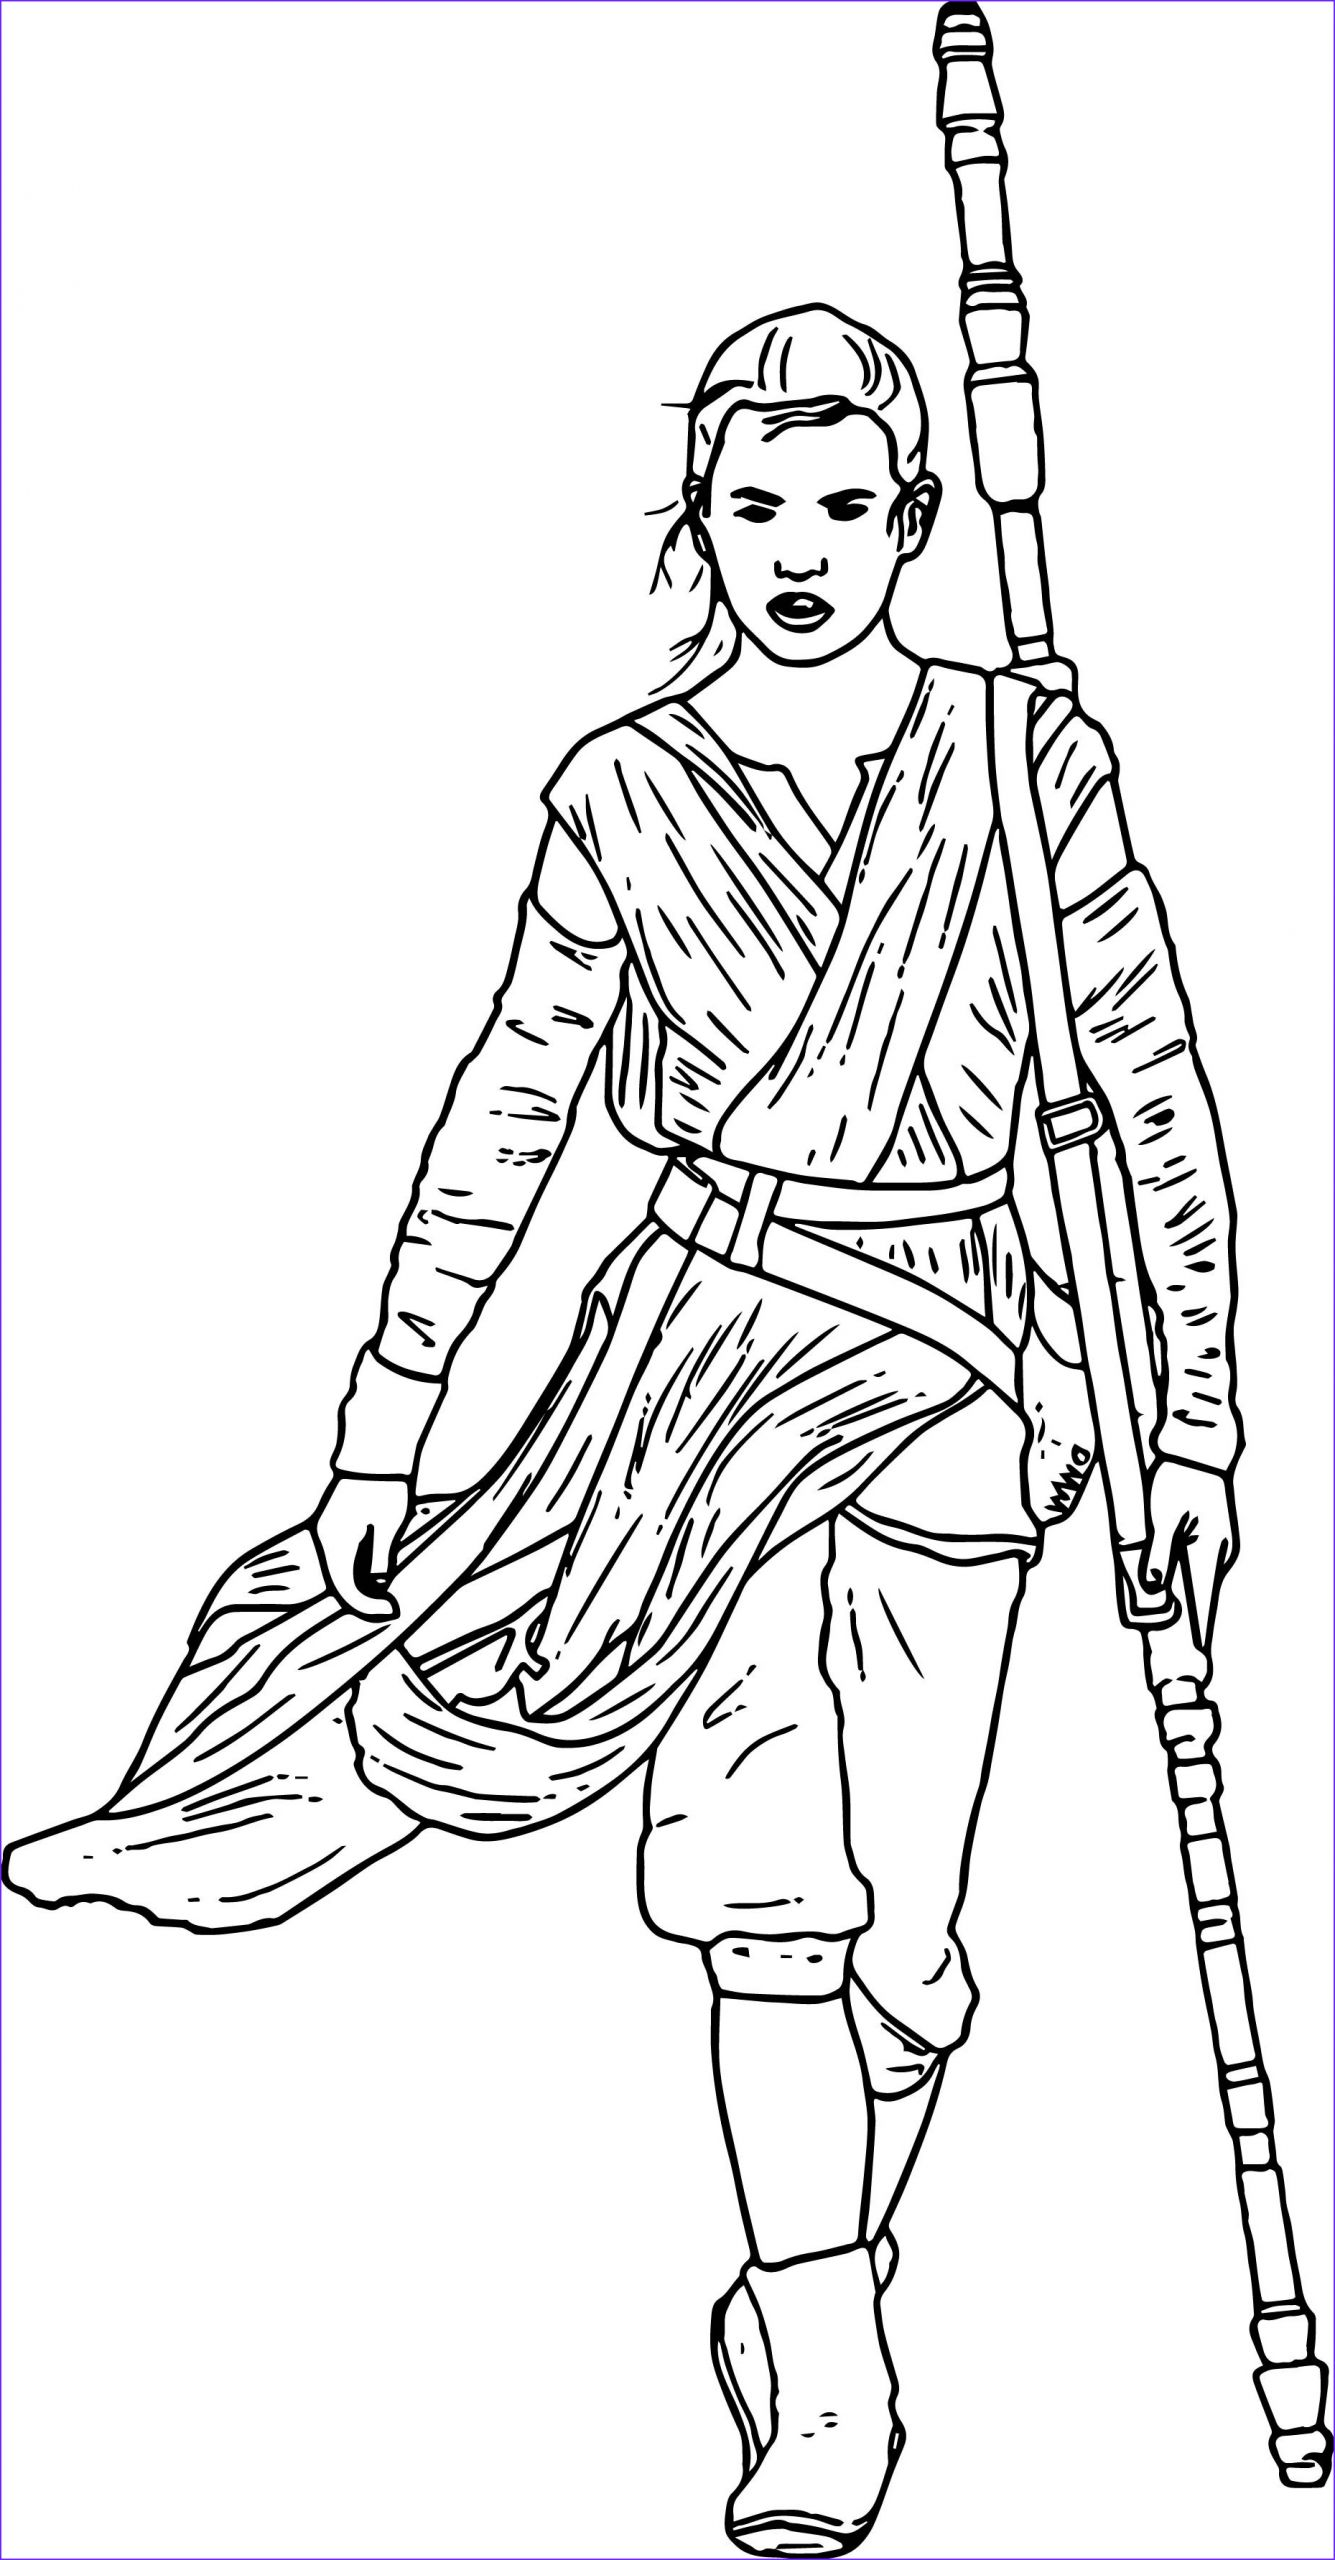 Star Wars Characters Coloring Pages Beautiful Photos Star Wars Characters Coloring Pages Gallery